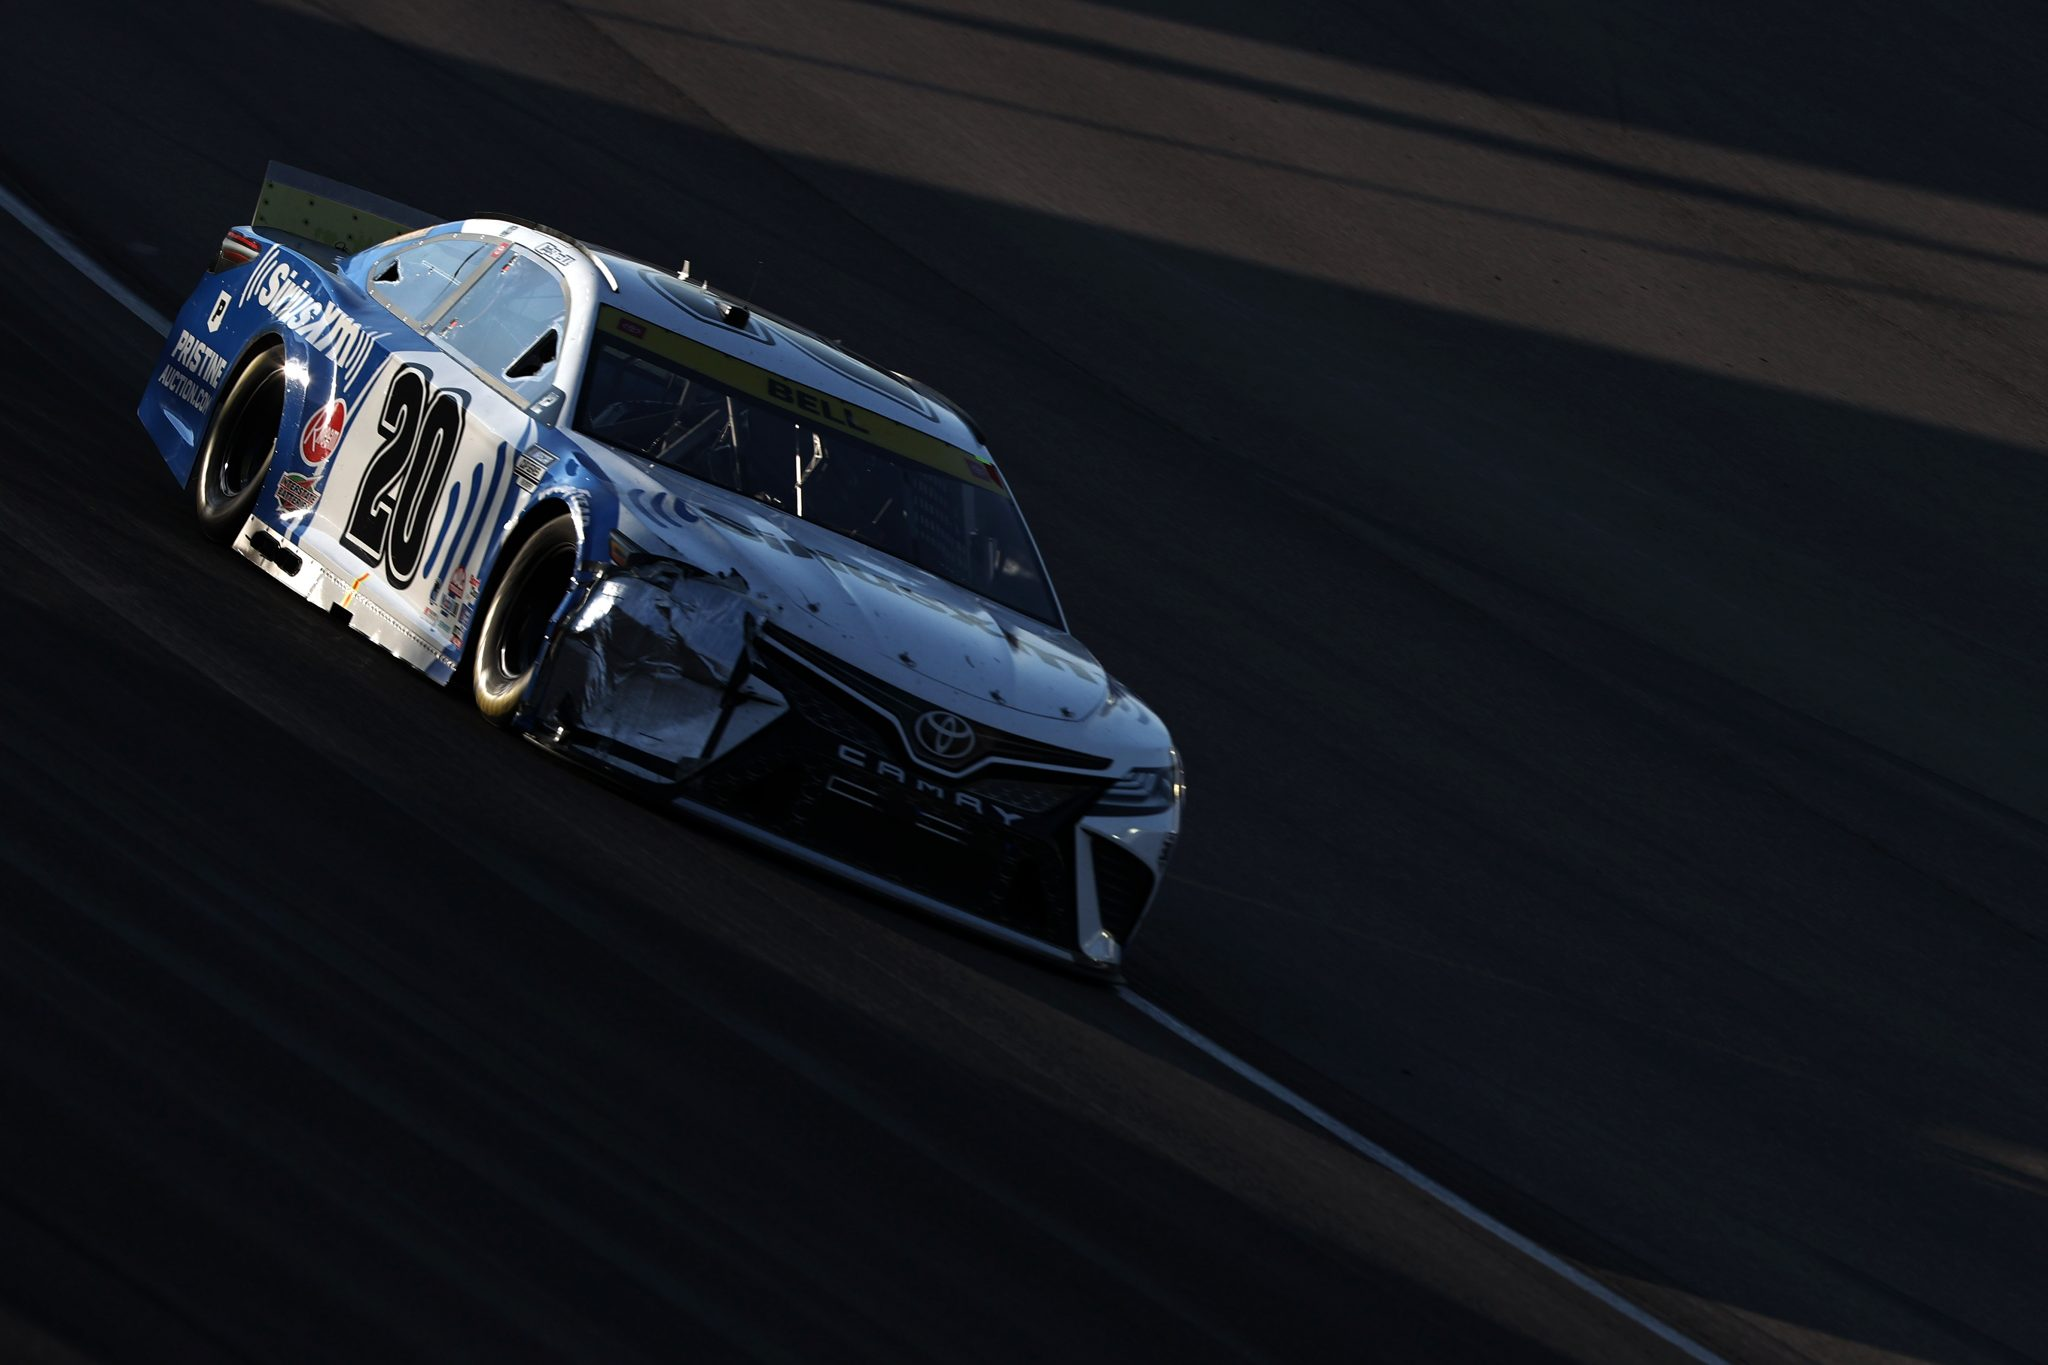 LAS VEGAS, NEVADA - SEPTEMBER 26: Christopher Bell, driver of the #20 SiriusXM Toyota, drives during the NASCAR Cup Series South Point 400 at Las Vegas Motor Speedway on September 26, 2021 in Las Vegas, Nevada. (Photo by Meg Oliphant/Getty Images) | Getty Images